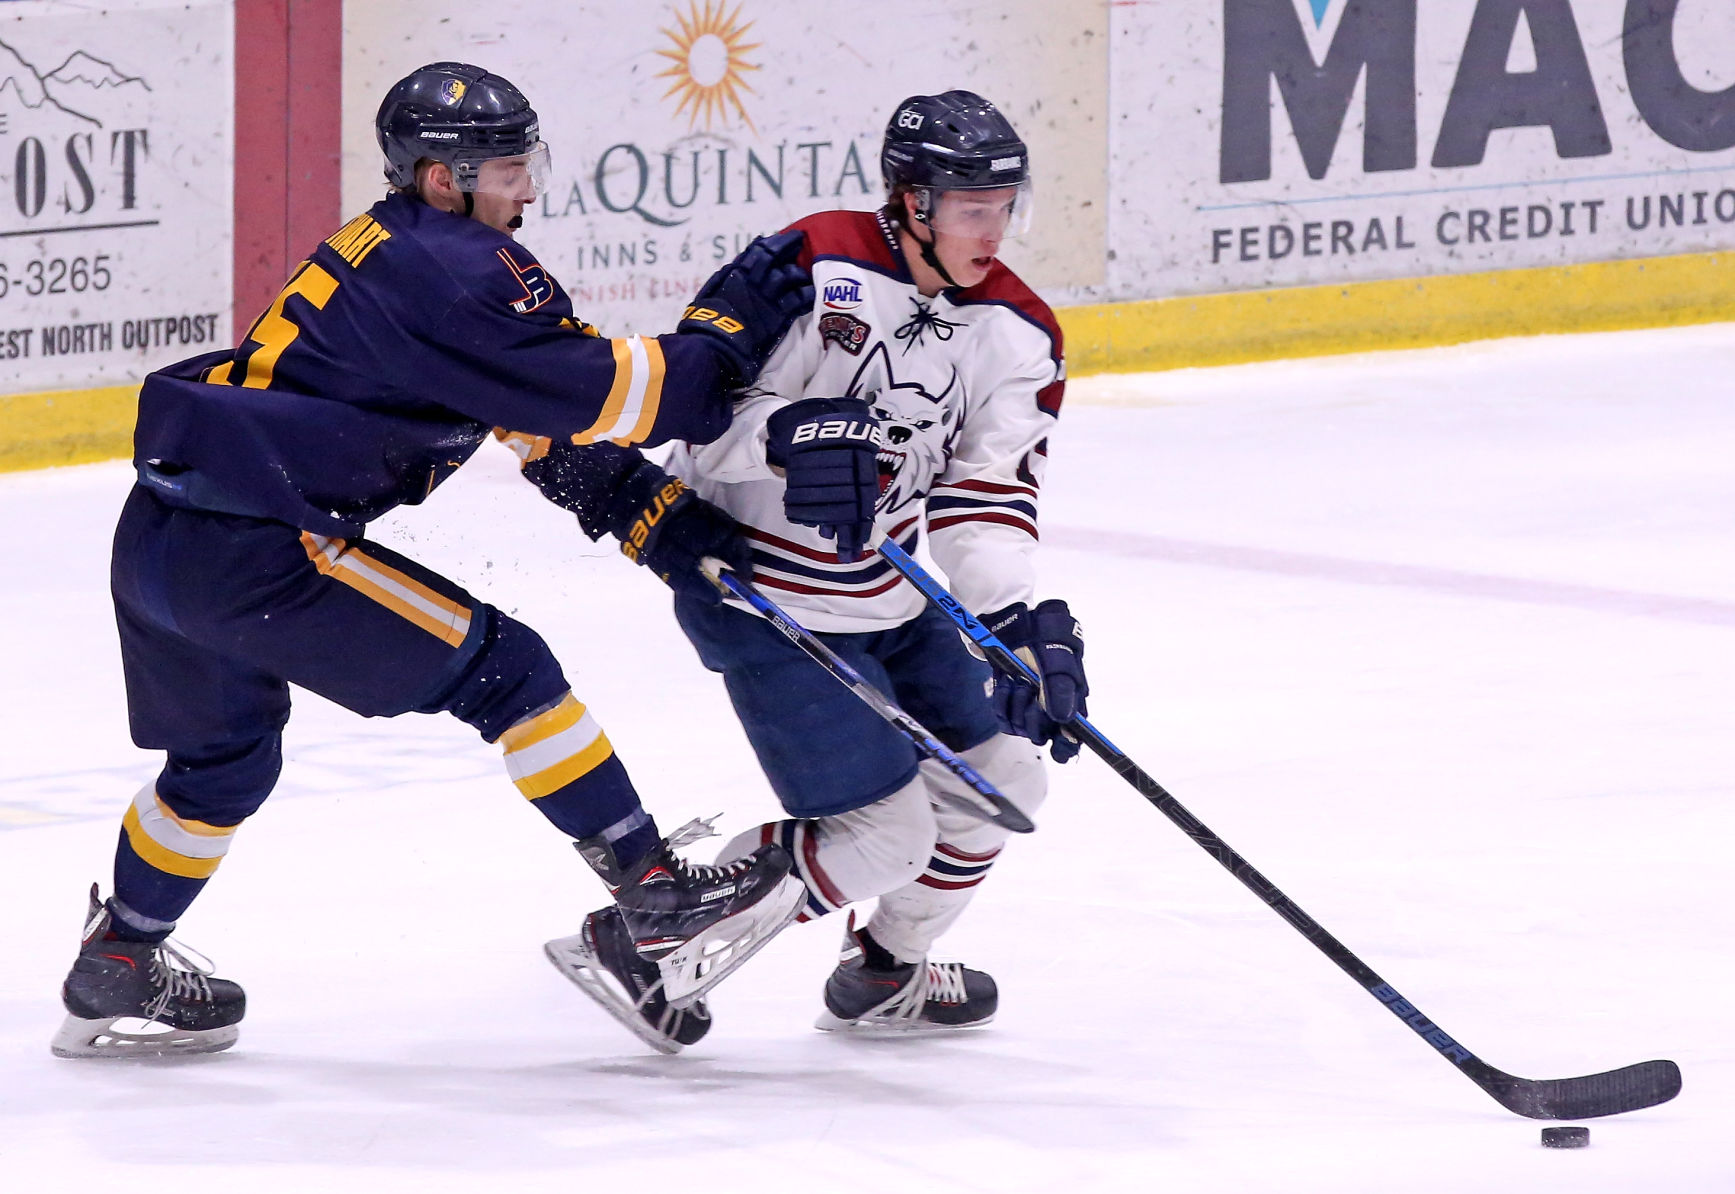 NAHL: Ice Dogs Forward Jonny Sorenson Commits To Play Hockey At Minnesota